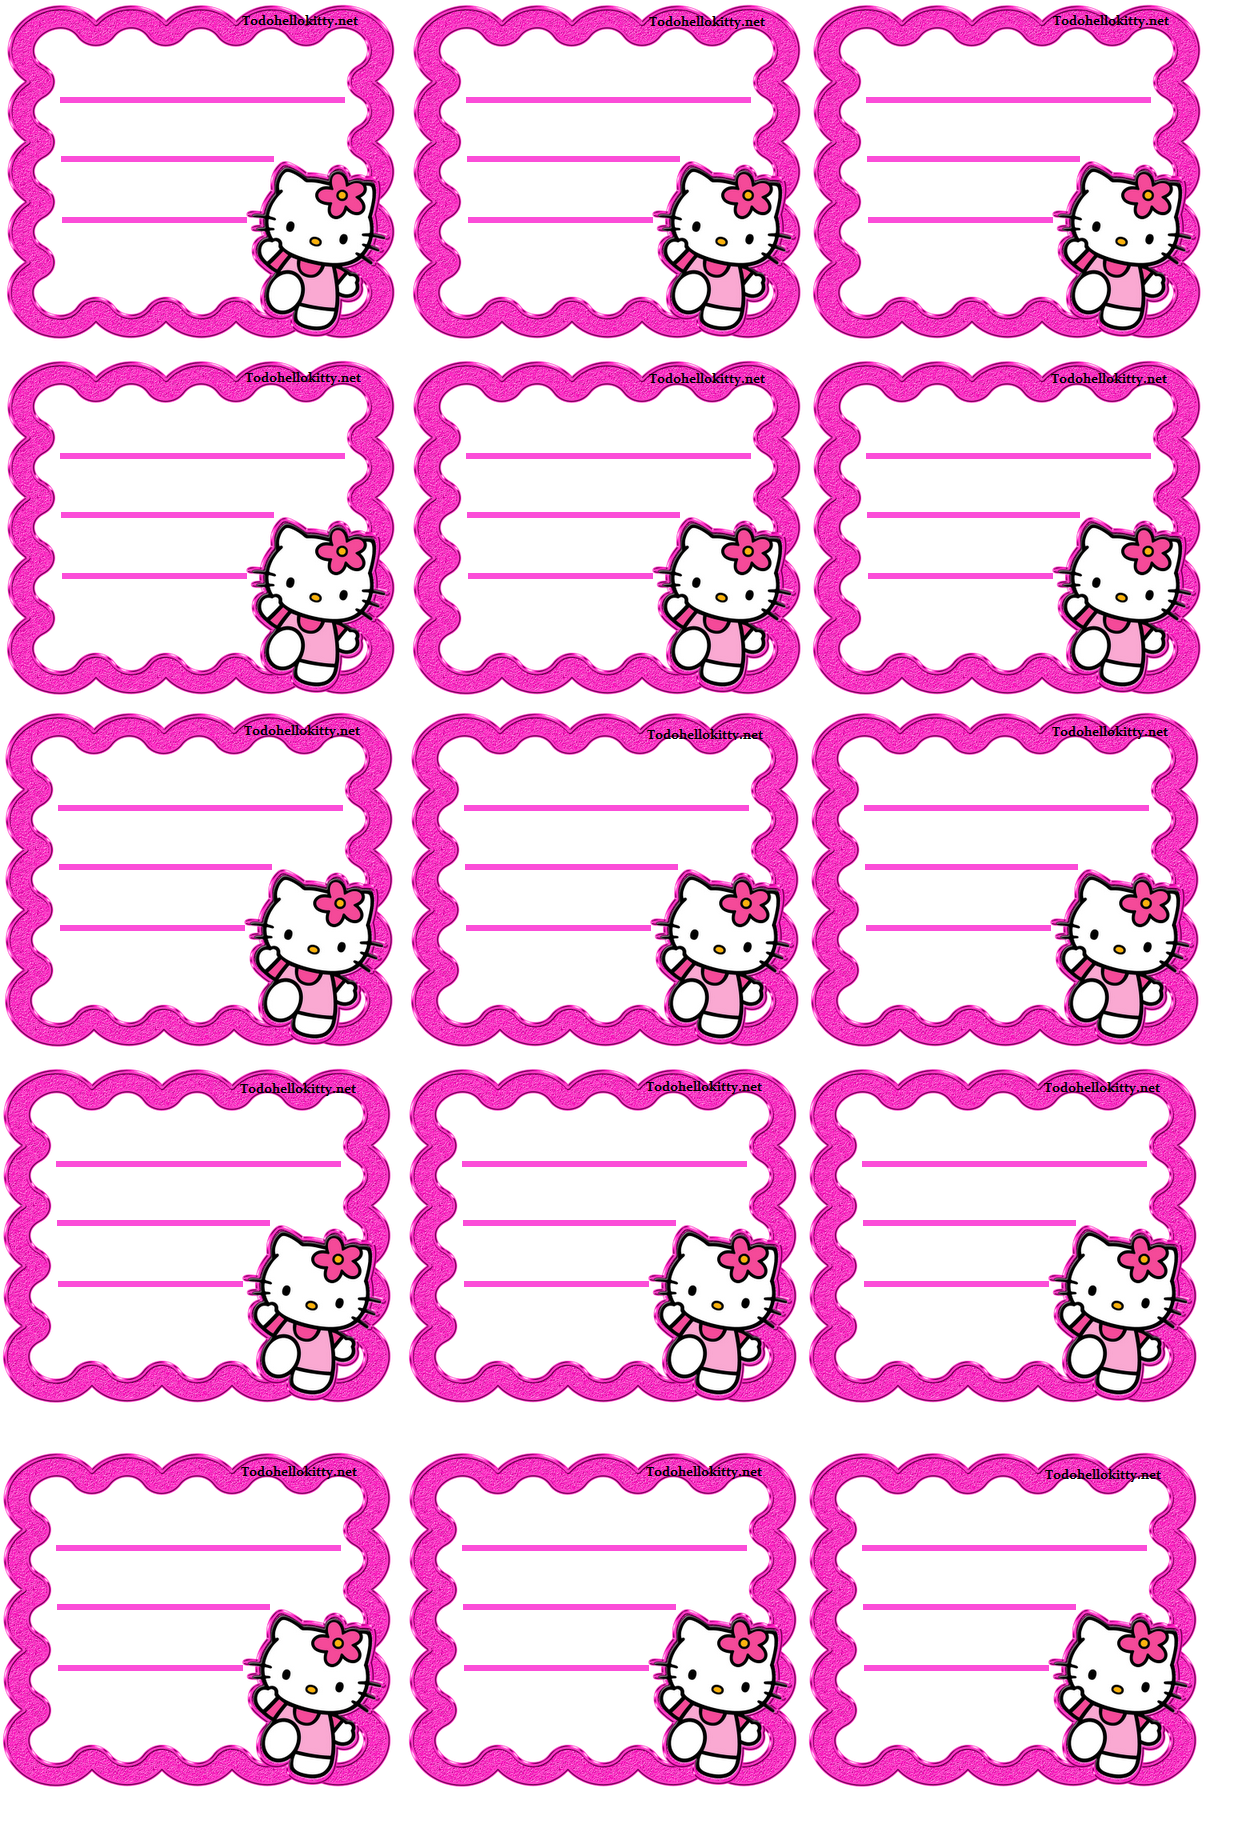 Etiquetas Kitty Hello Kitty Clipart Borders For Paper Page Borders Design